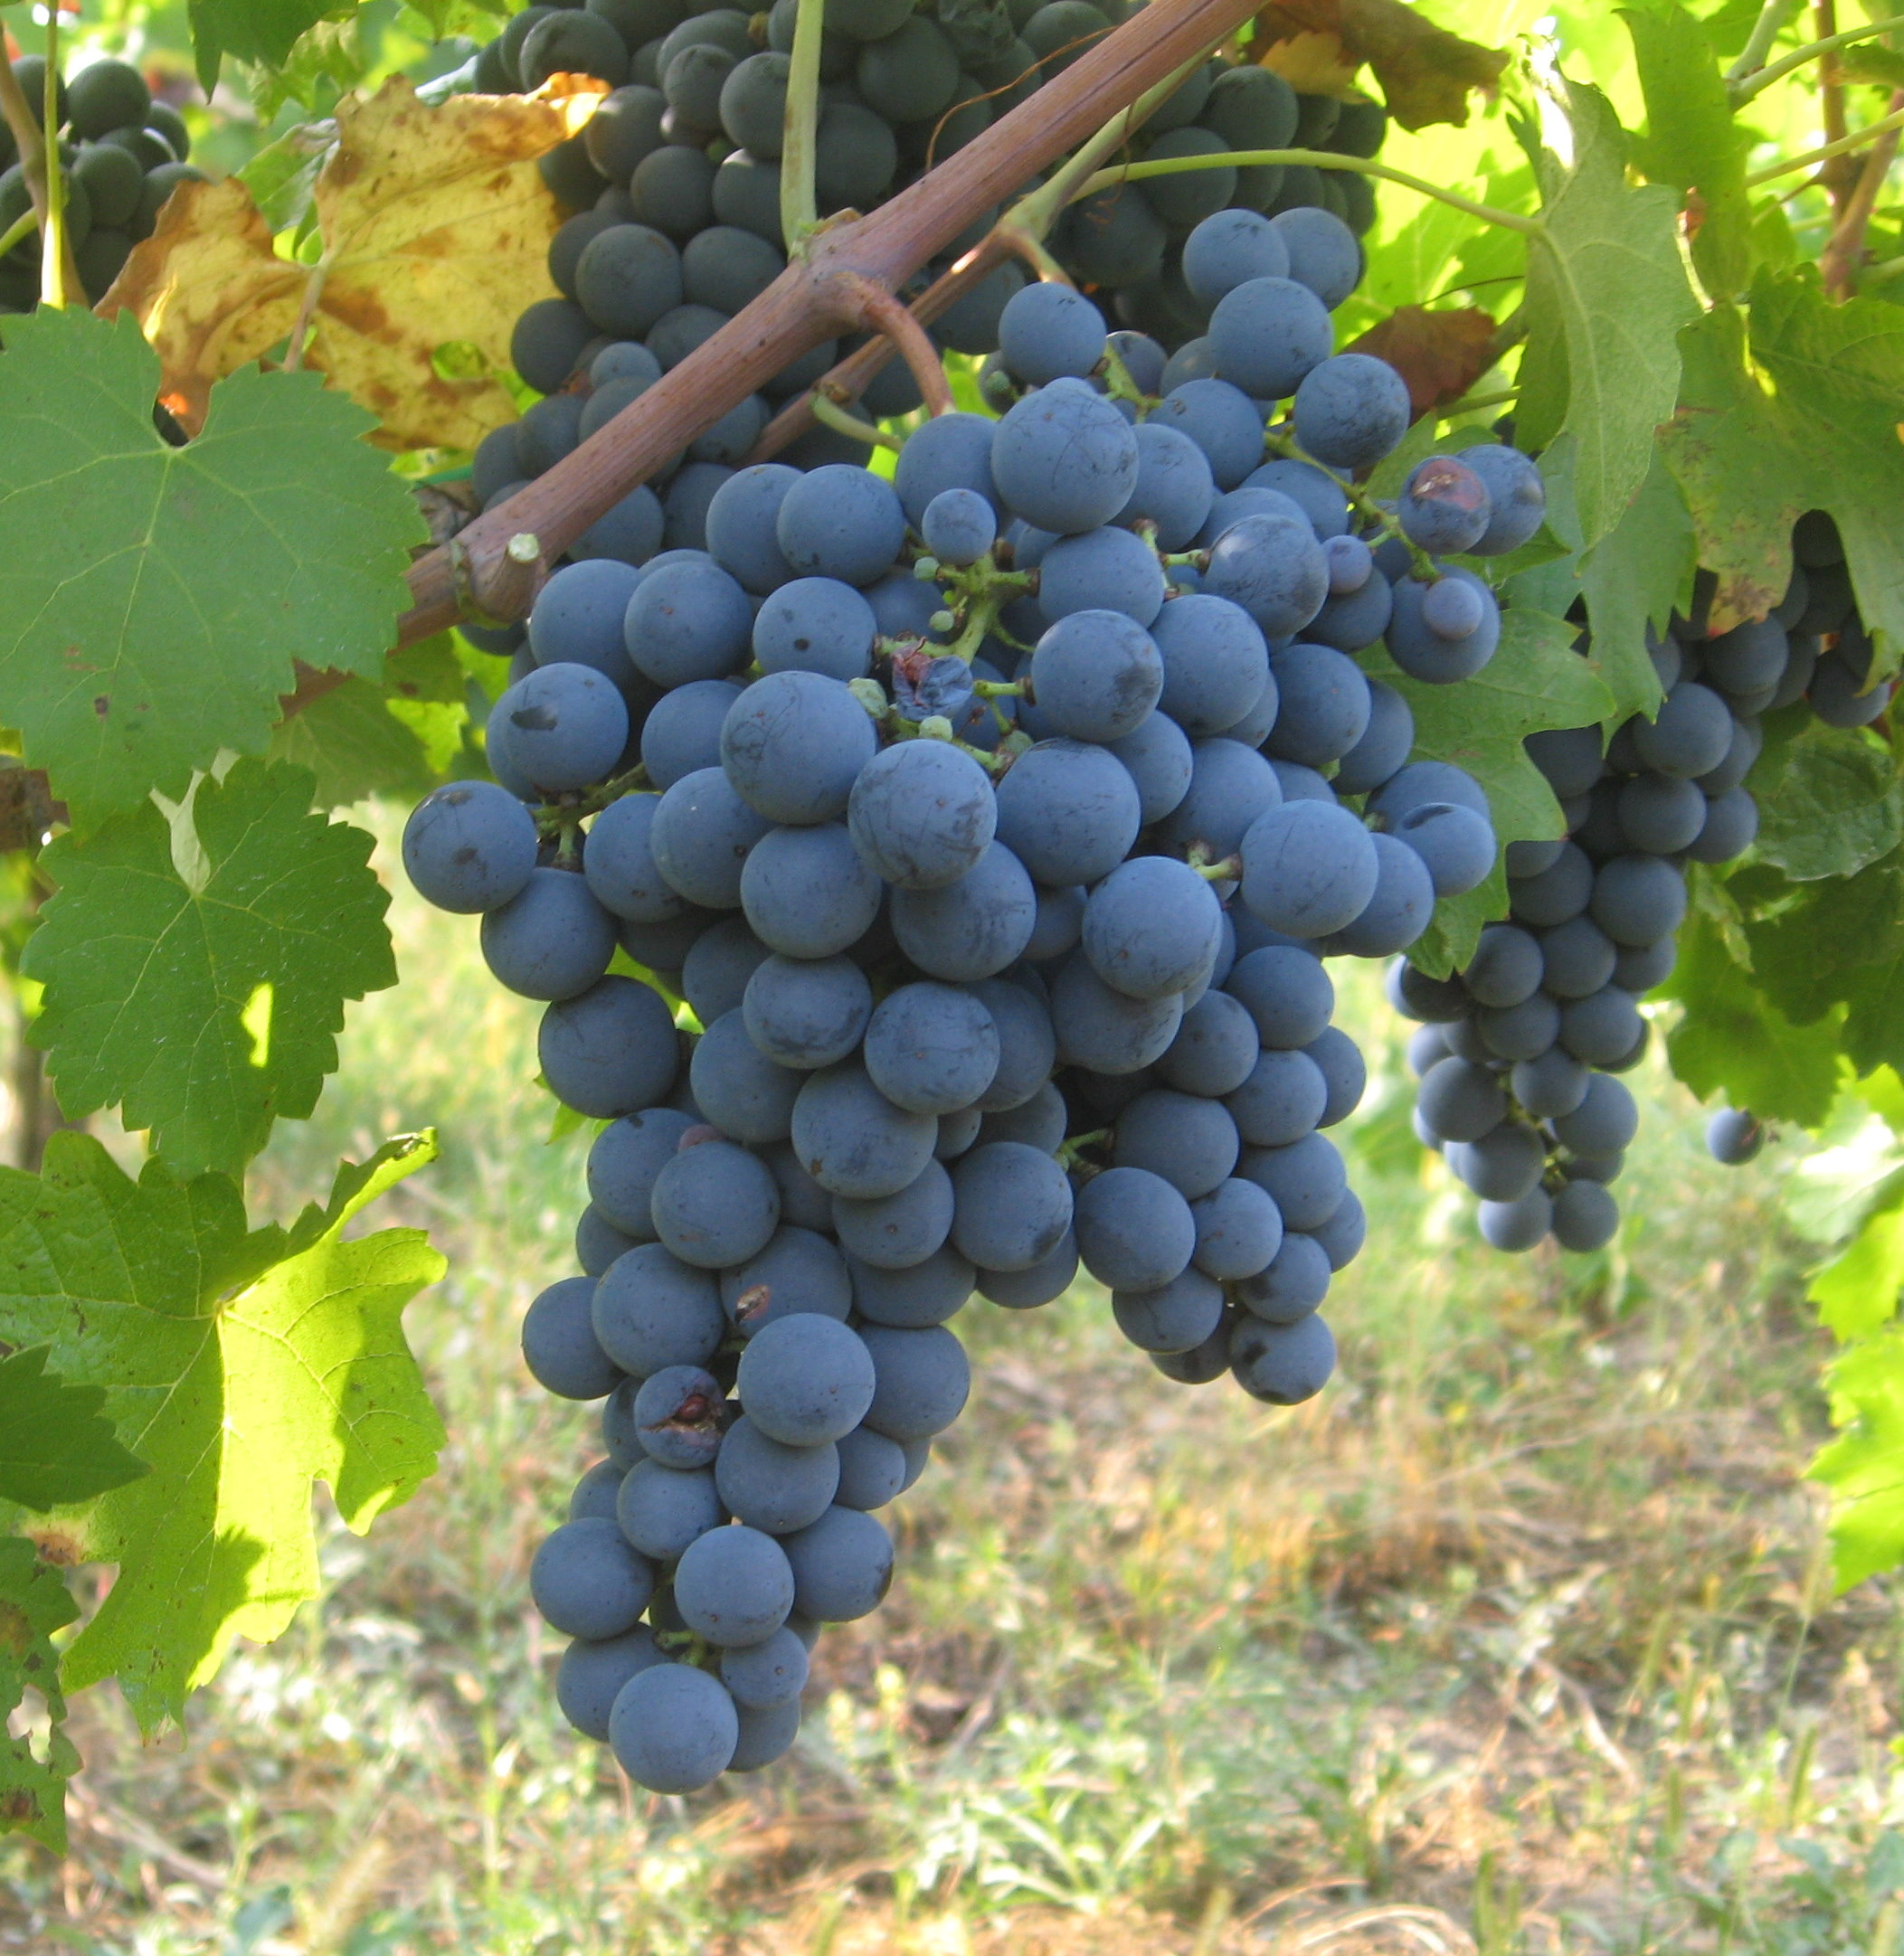 https://upload.wikimedia.org/wikipedia/commons/7/75/CarmenereW.jpg